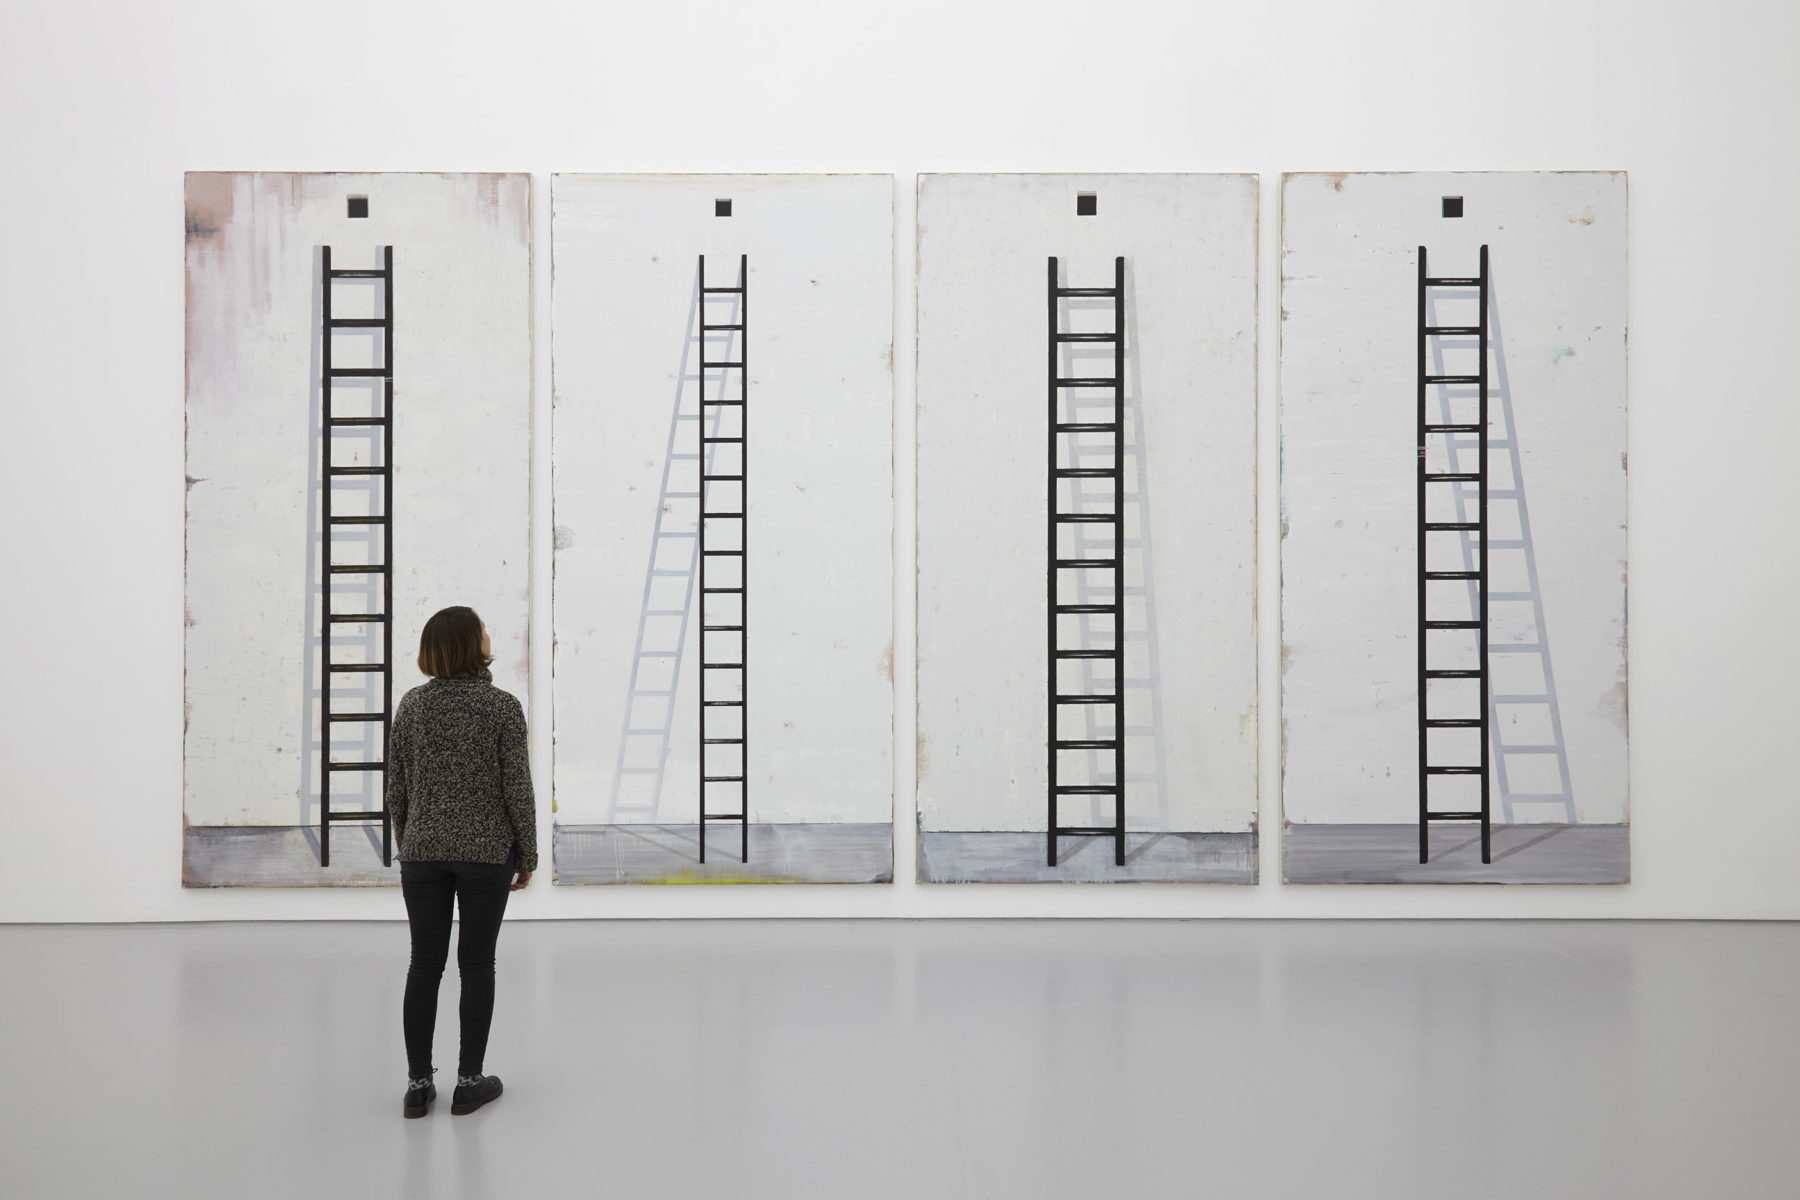 A visitor stands looking at four tall paintings of ladders. Each painting has a shadow appearing differently behind the ladder.